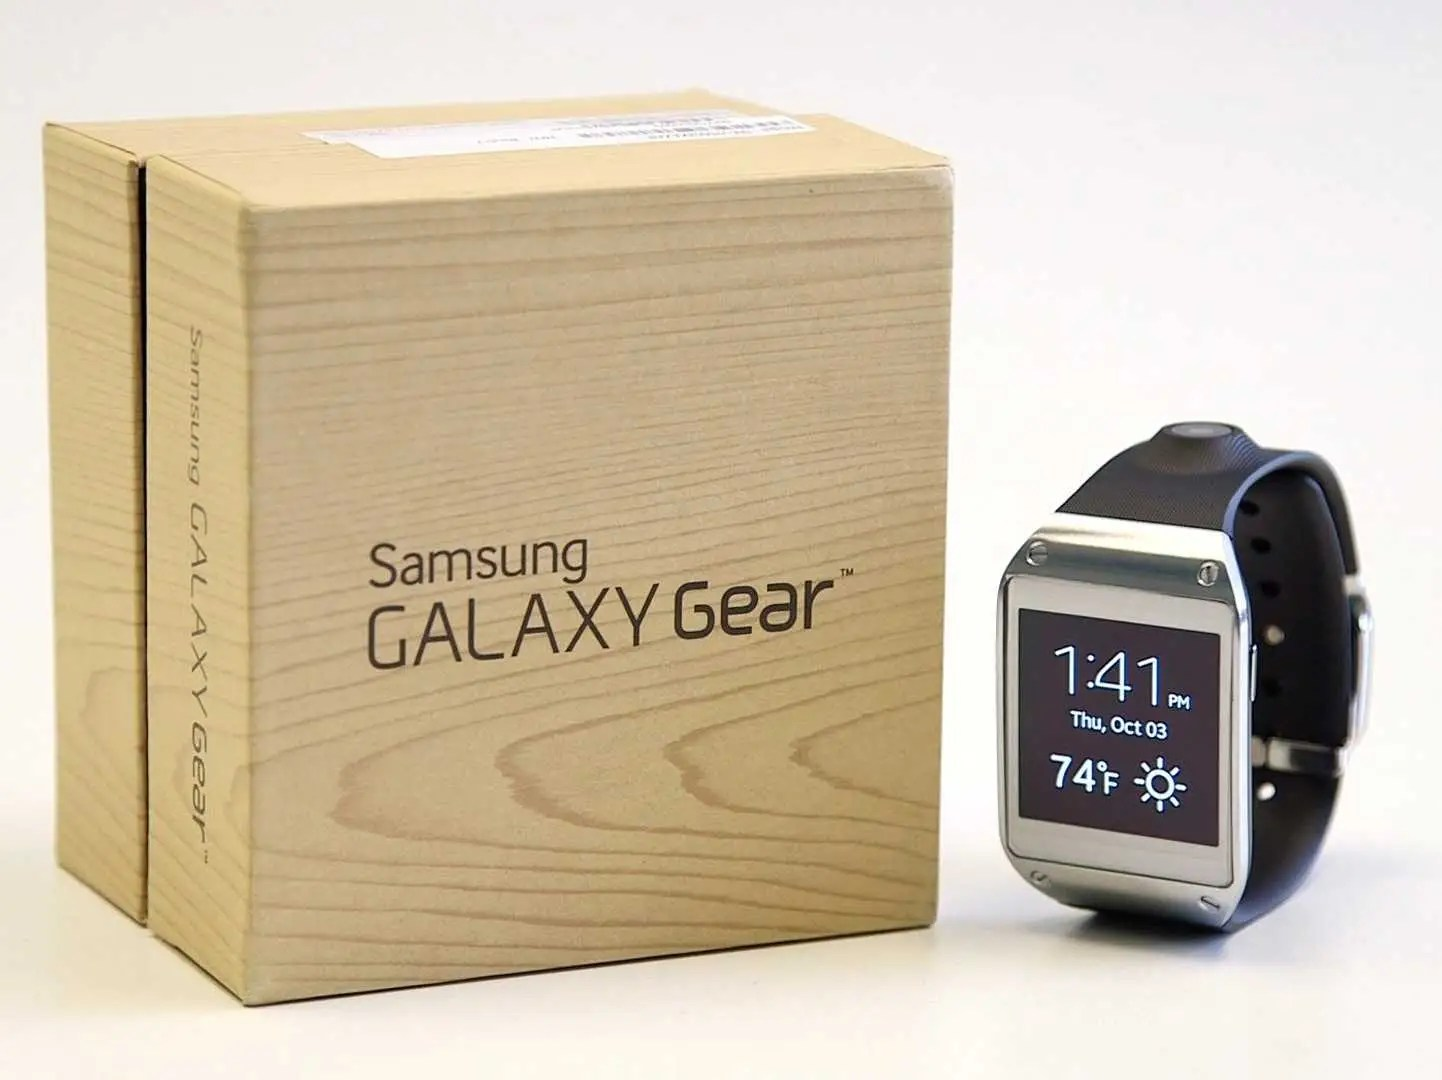 The Galaxy S4 is one of the only devices that can sync with Samsung's new smart watch, the Galaxy Gear.